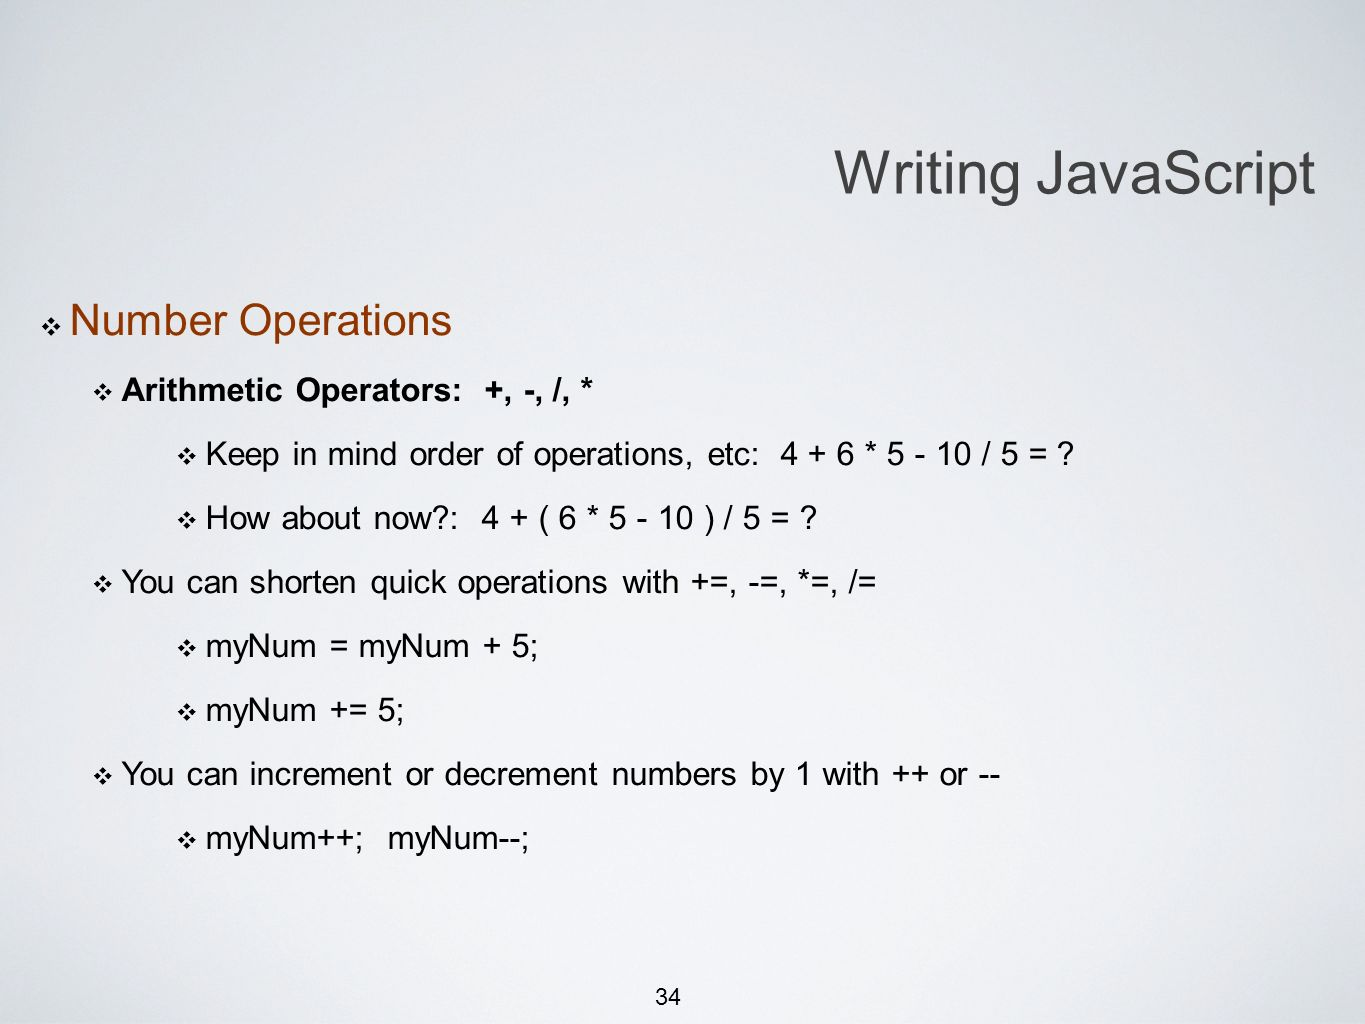 34 Michael Smotherman lectures 1:15pm FS2-207F Brandon Bombassei, Alejandro Campos labs 5pm-9pm 9pm-1am FS2-106E Writing JavaScript Number Operations Arithmetic Operators: +, -, /, * Keep in mind order of operations, etc: 4 + 6 * 5 - 10 / 5 = .